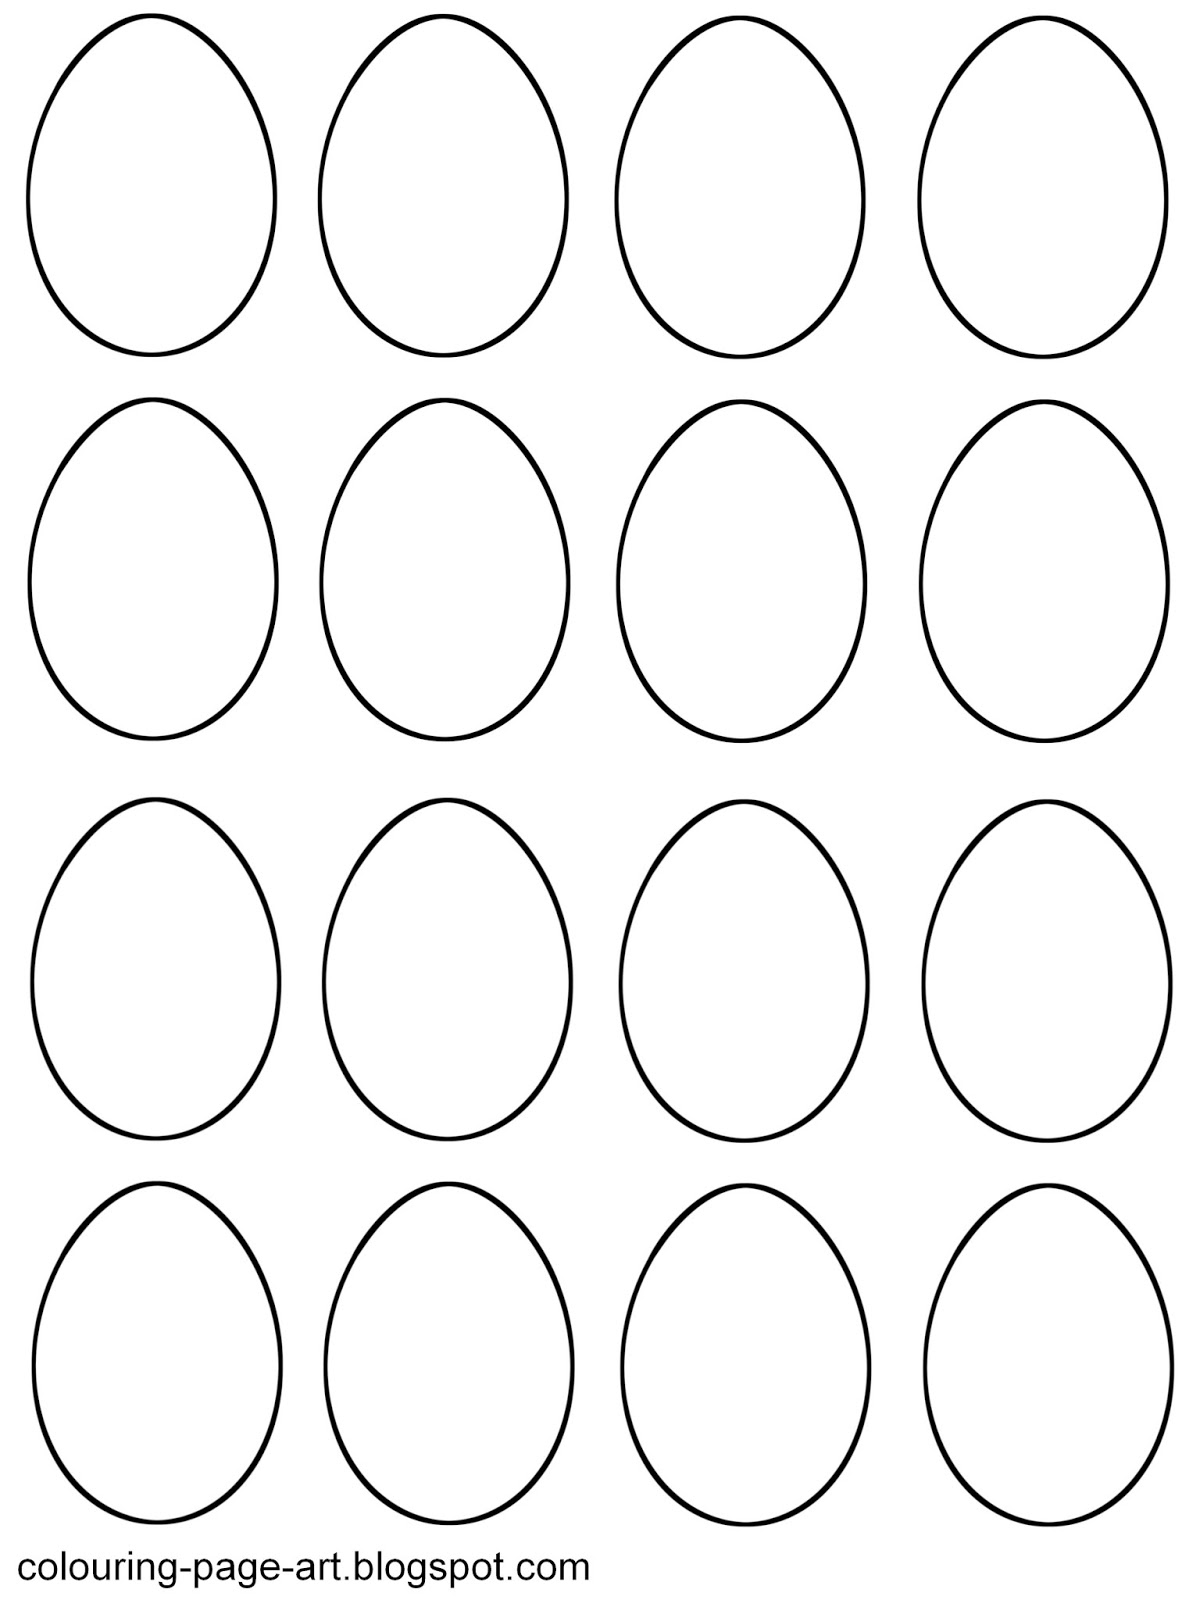 small easter egg template blank easter egg templates colouring page art